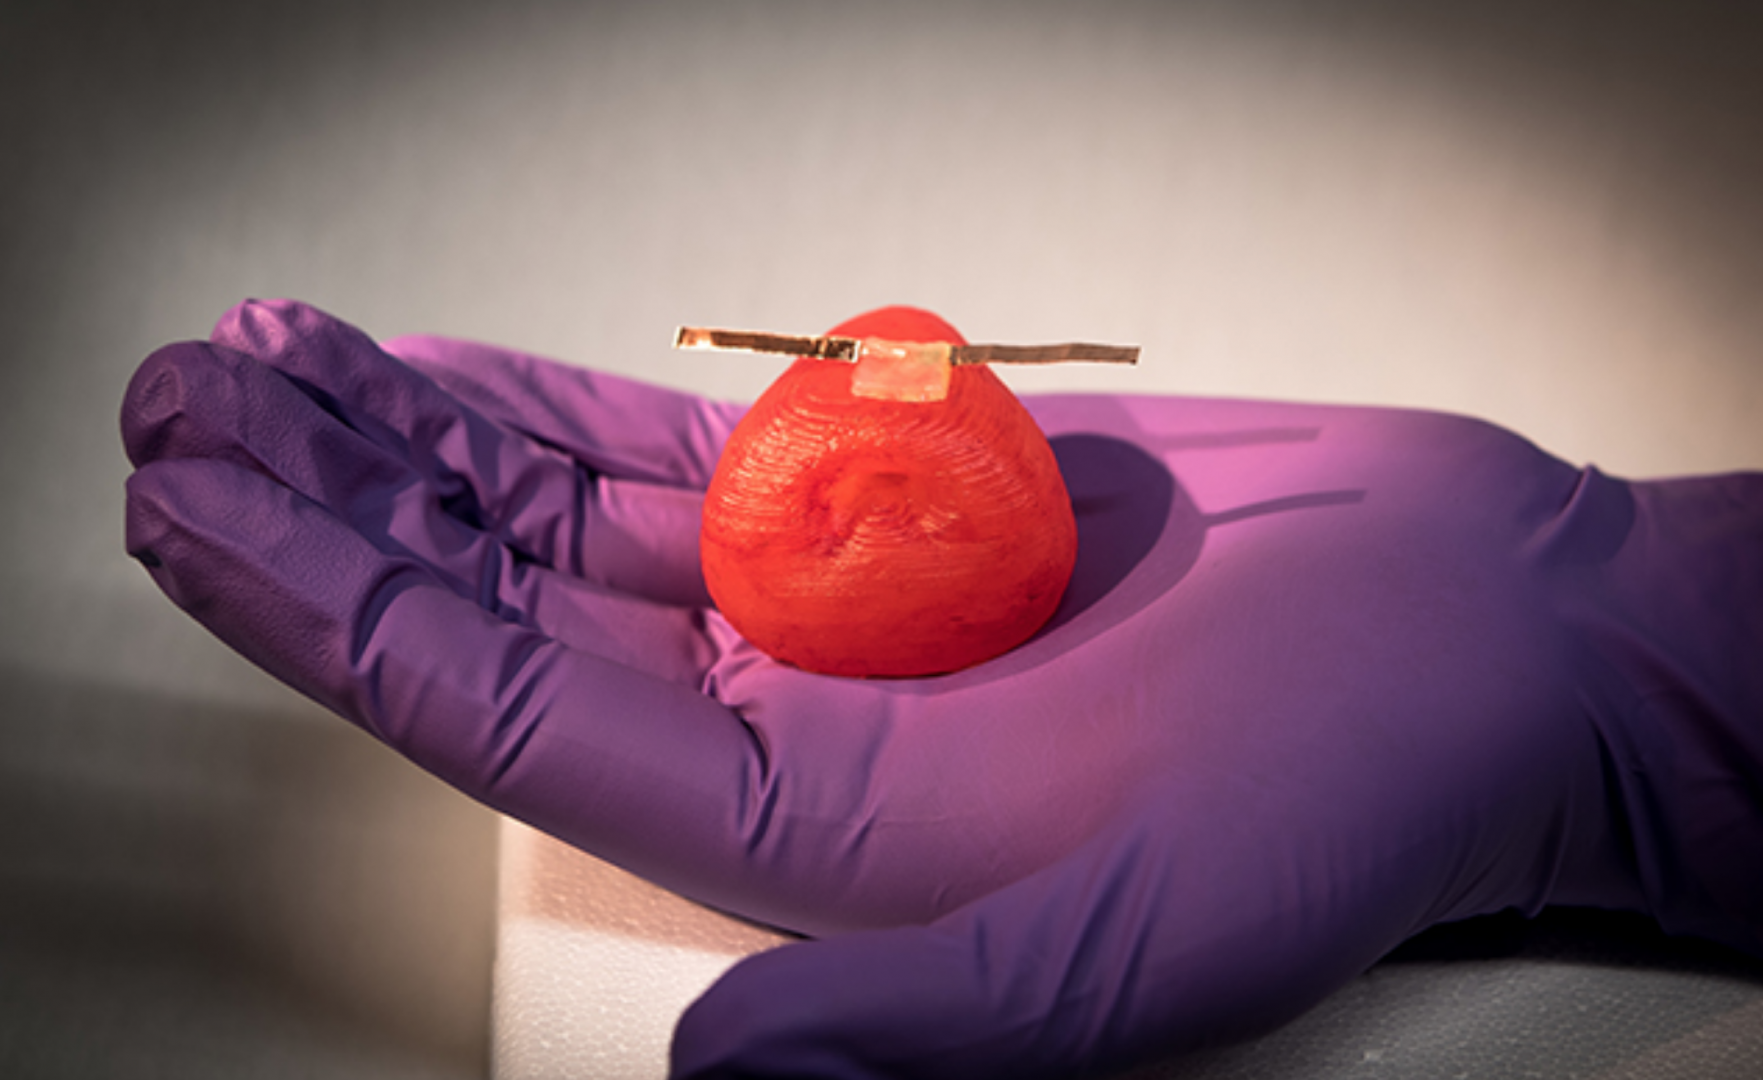 Minnesota Researchers Create 3D Printed Organs for Realistic Surgical Training | All3DP